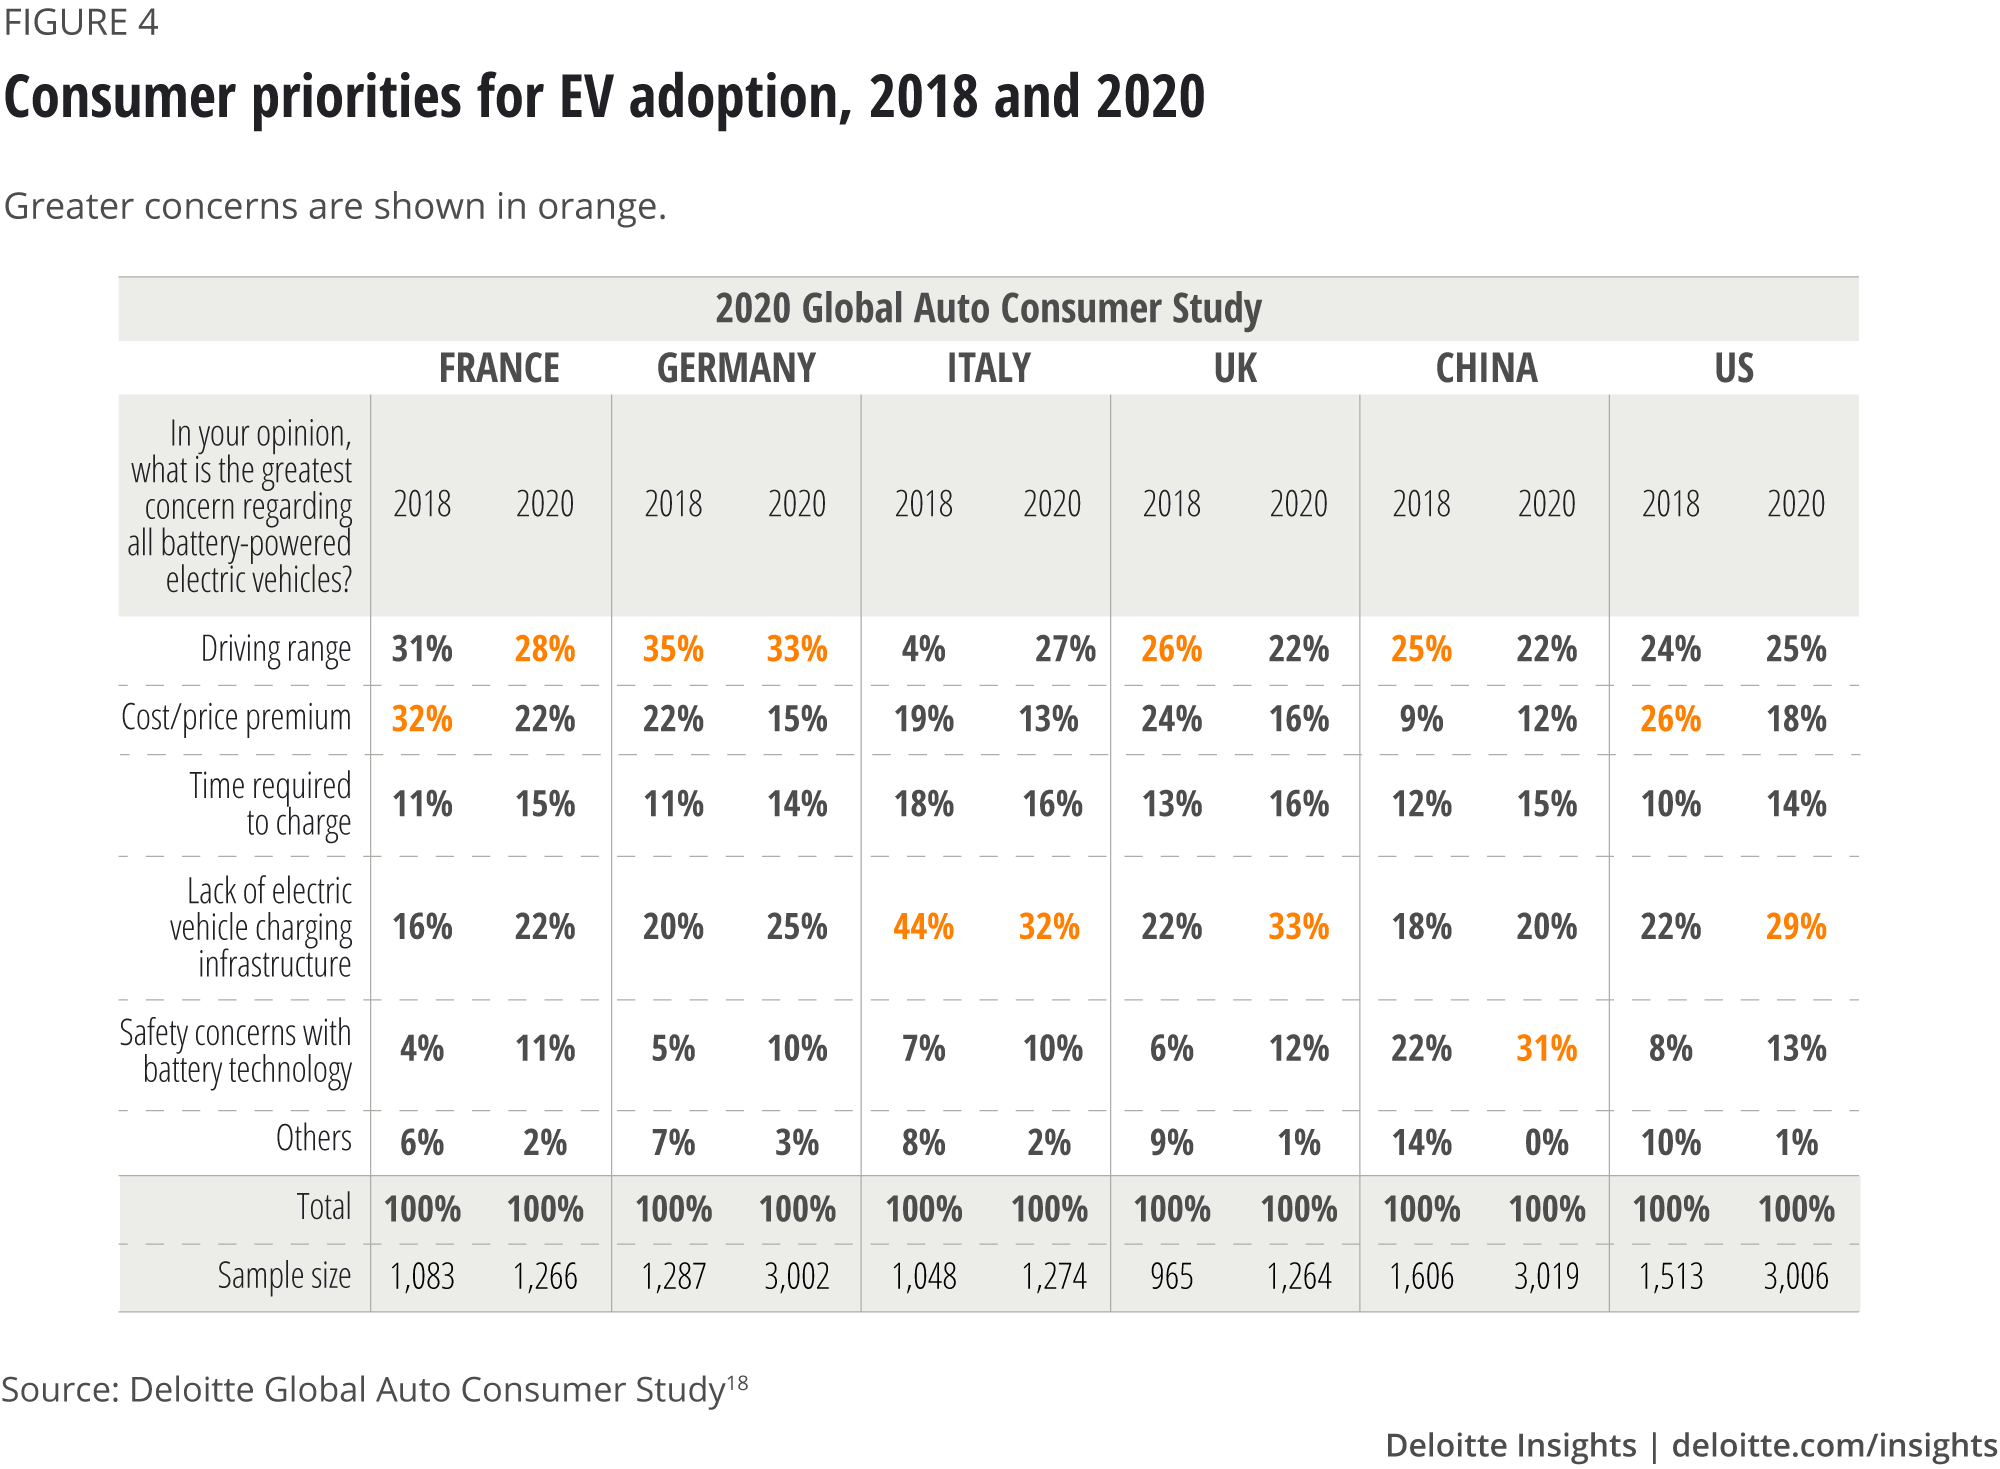 Compared consumer priorities with regard to aspects of EV adoption, 2018 and 2020